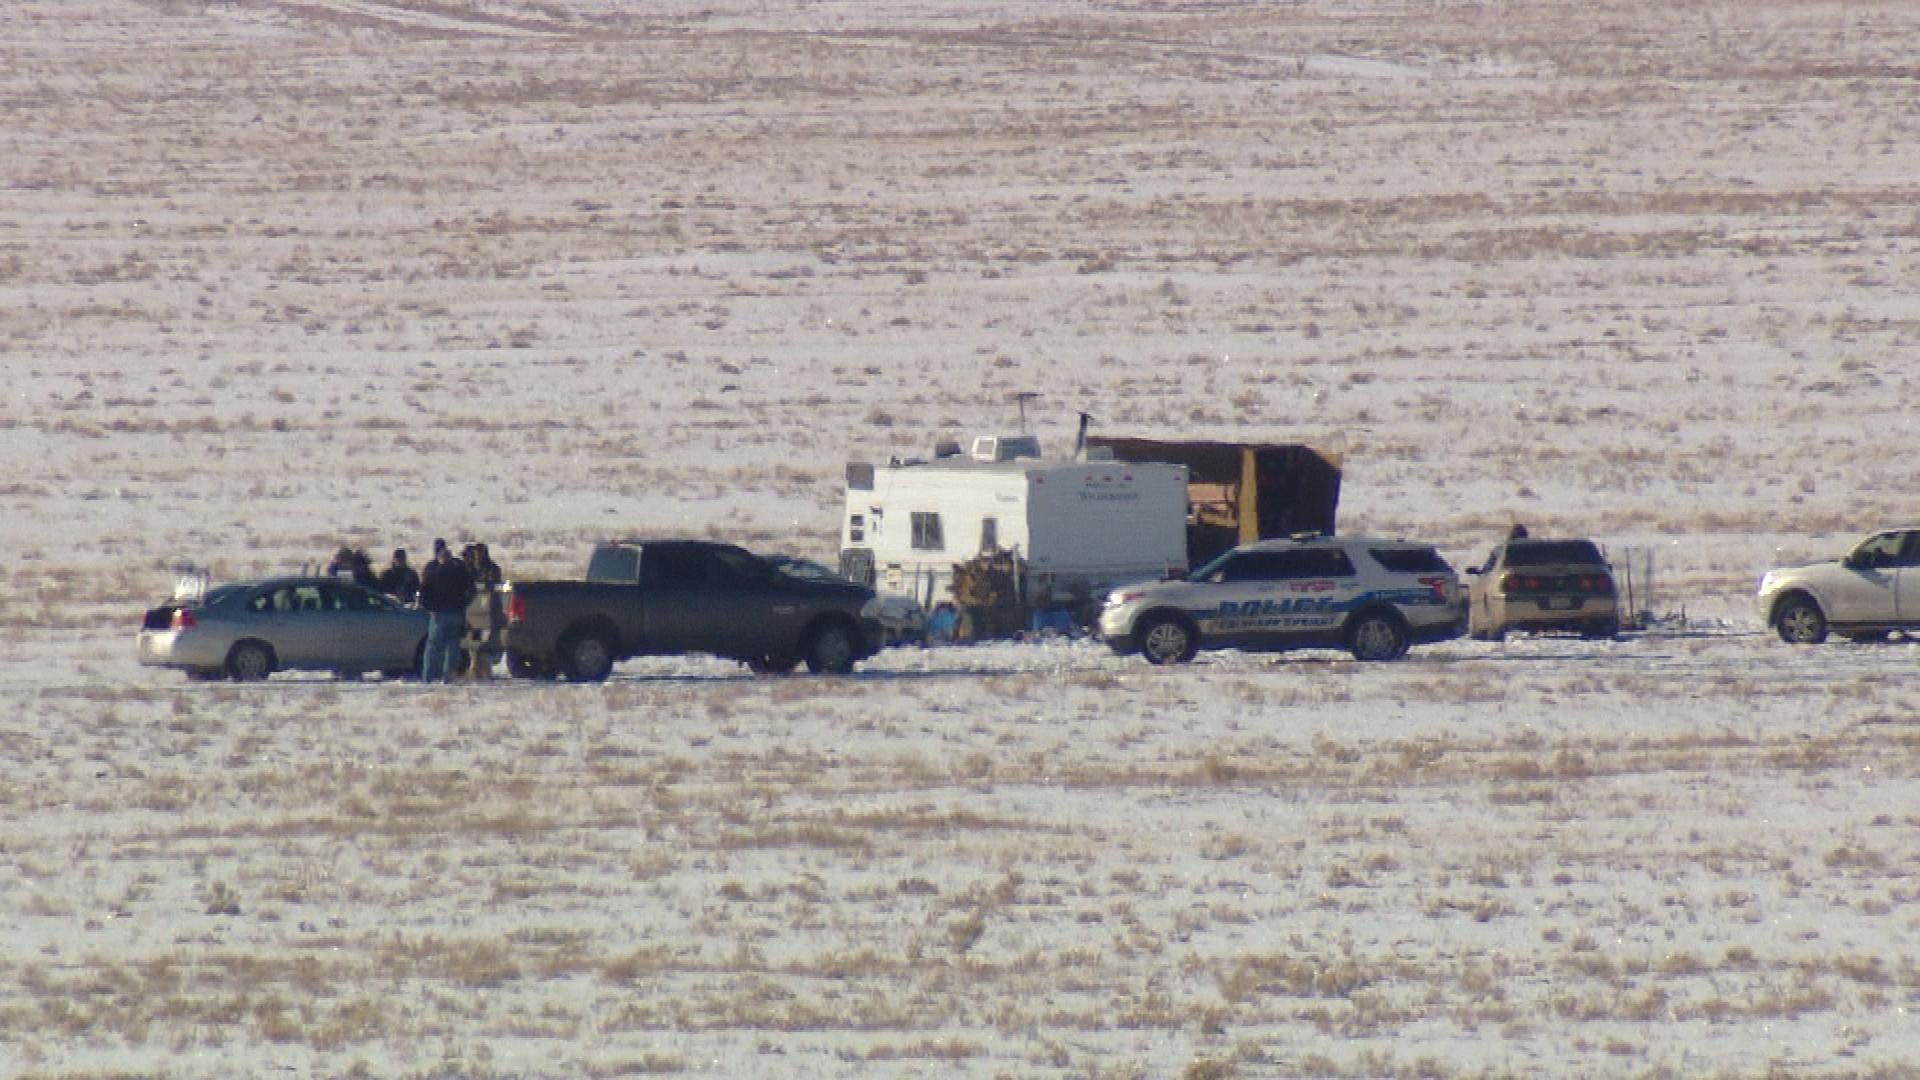 Robert Lewis Dear's property in Park County (credit: CBS)